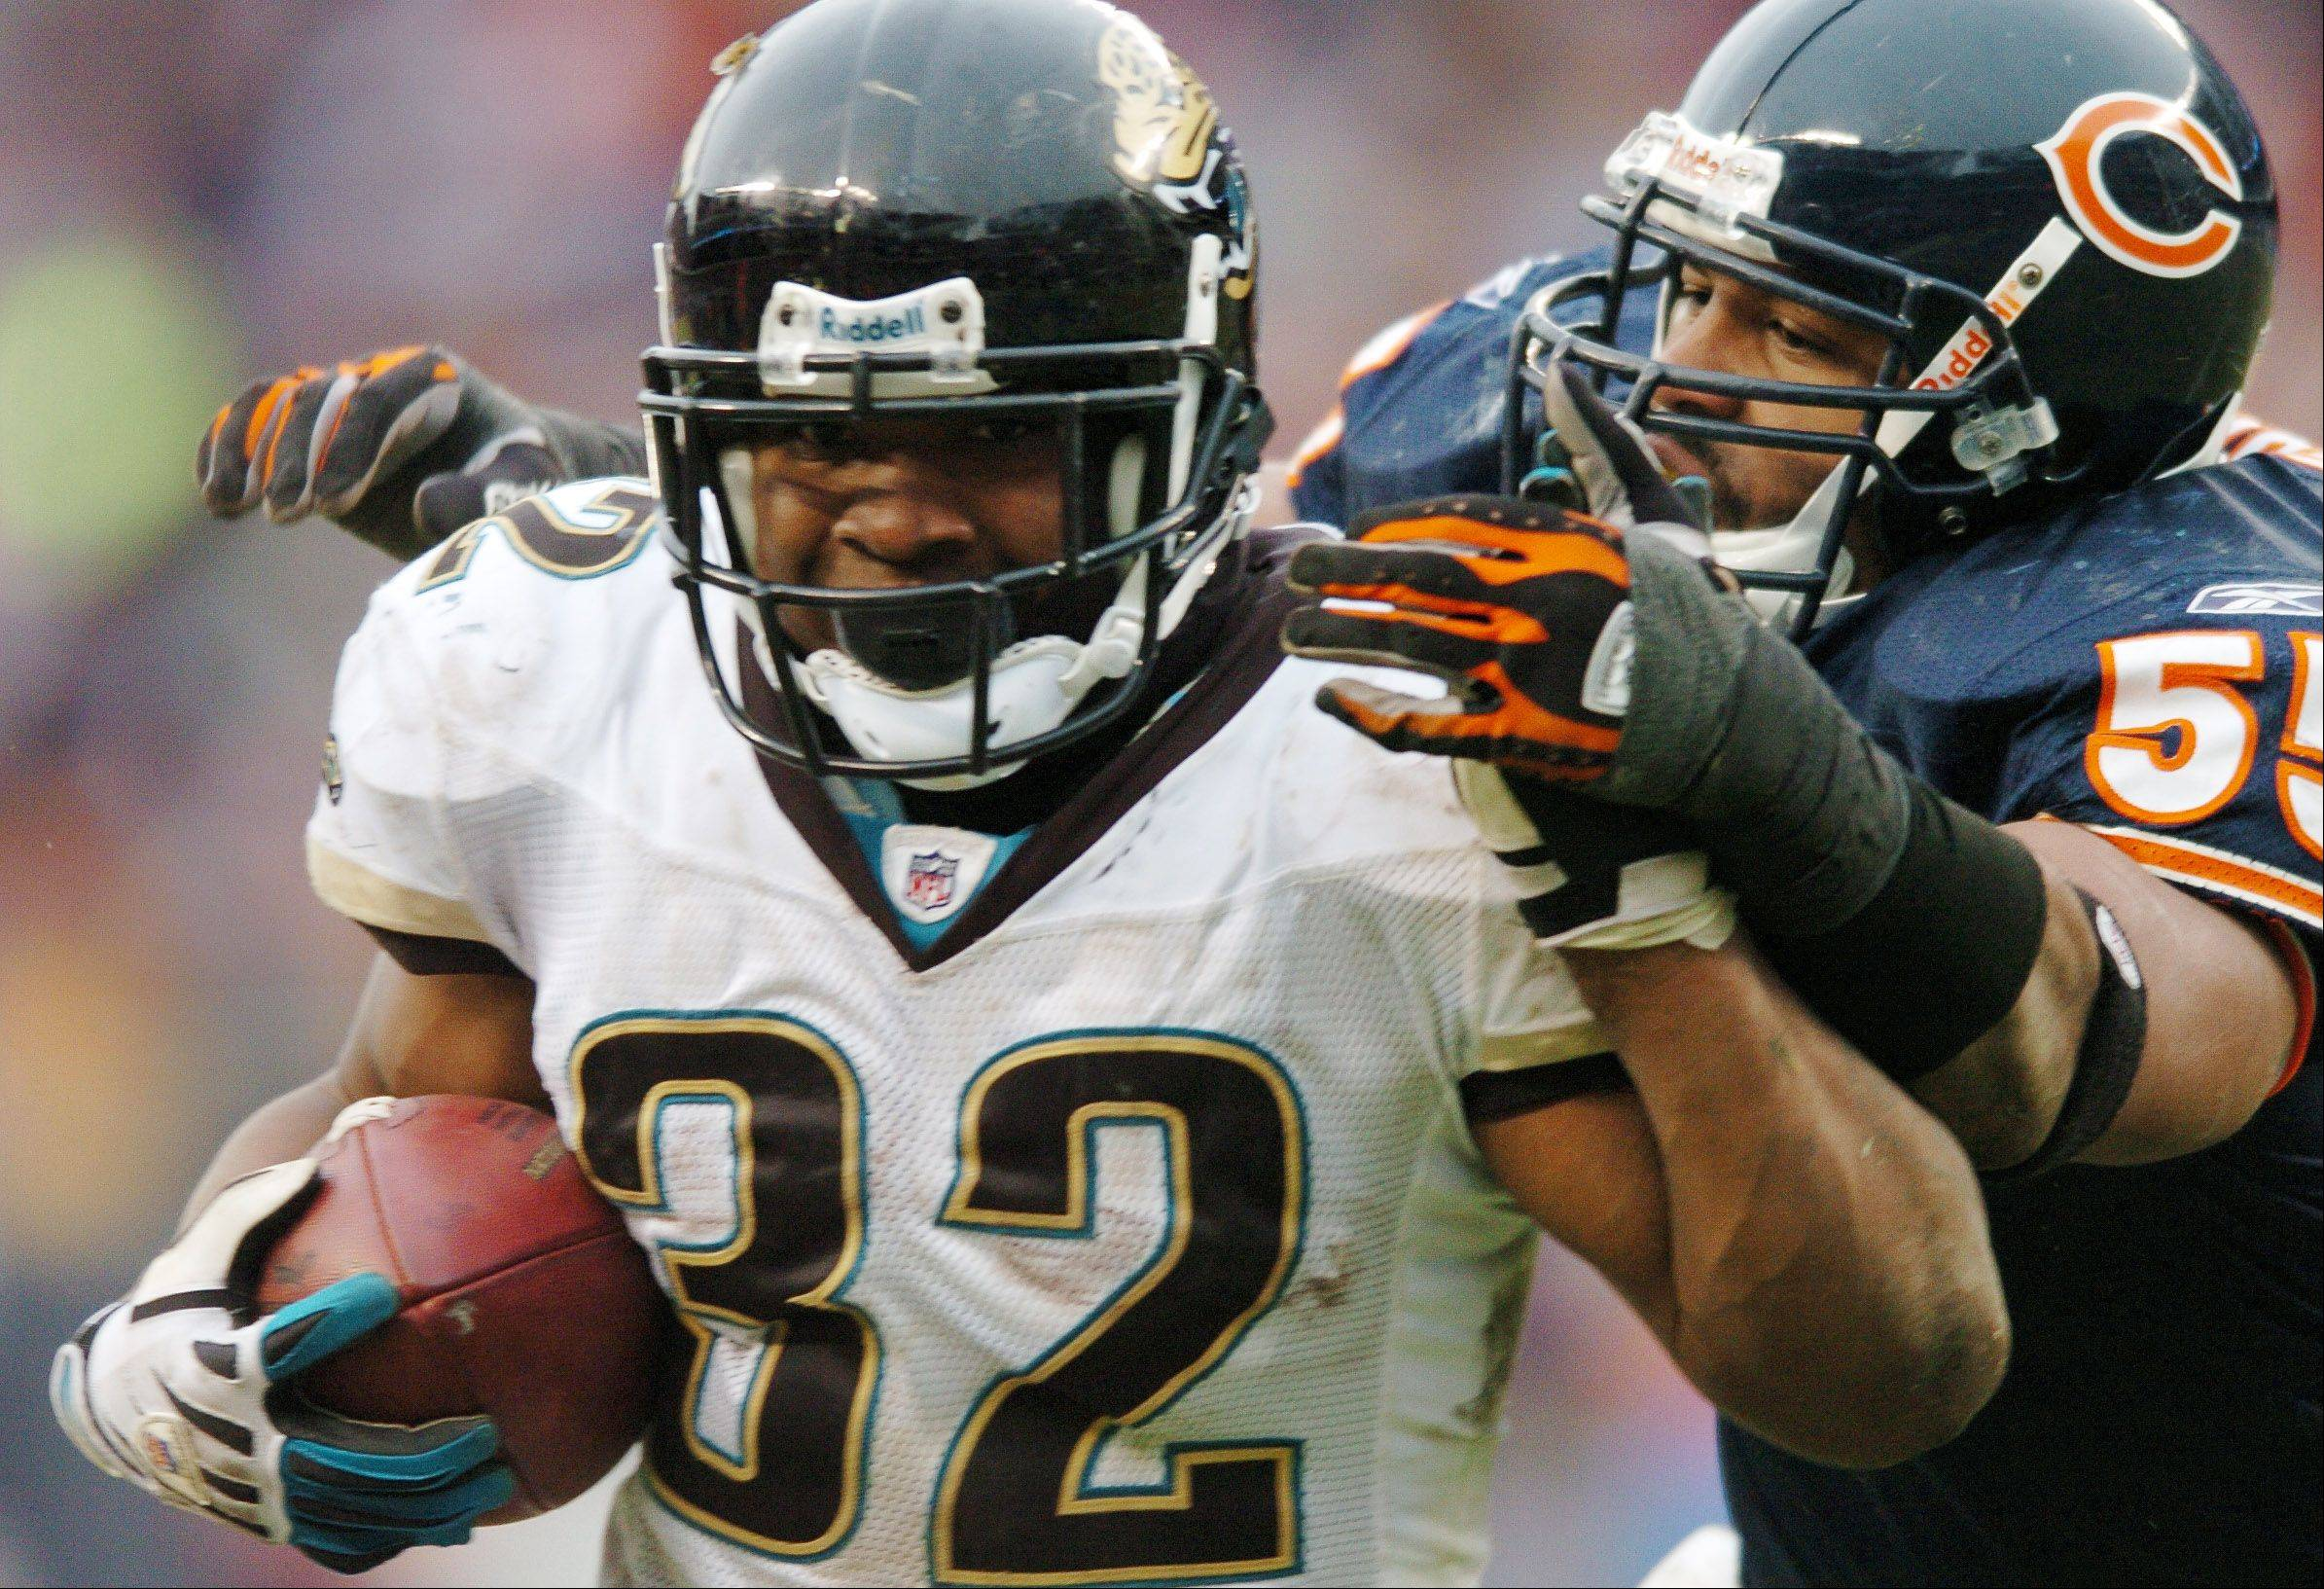 Jacksonville running back Maurice Jones-Drew says he won't apologize for critical comments he posted on his Twitter account about Bears quarterback Jay Cutler last January.